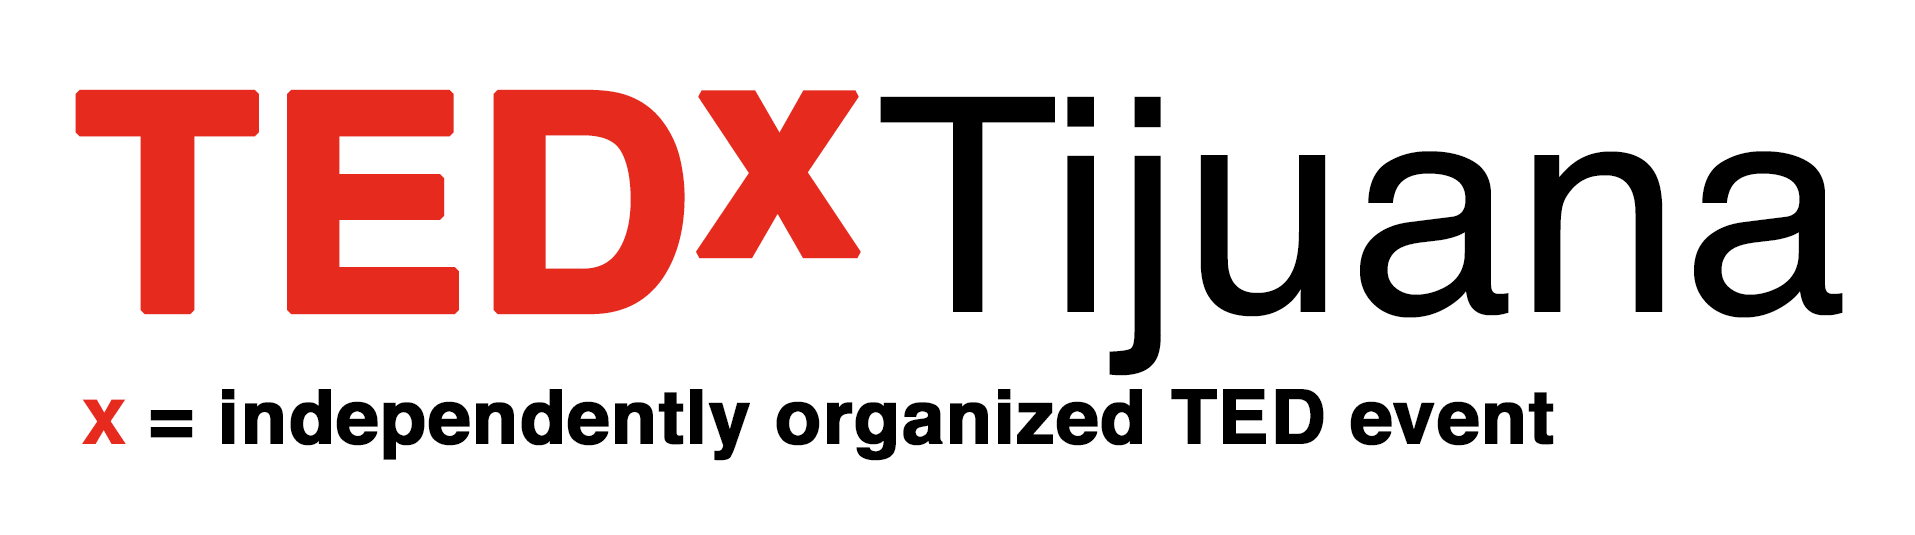 TEDxTijuana is an annual TEDx event that is held in Tijuana, Mexico.